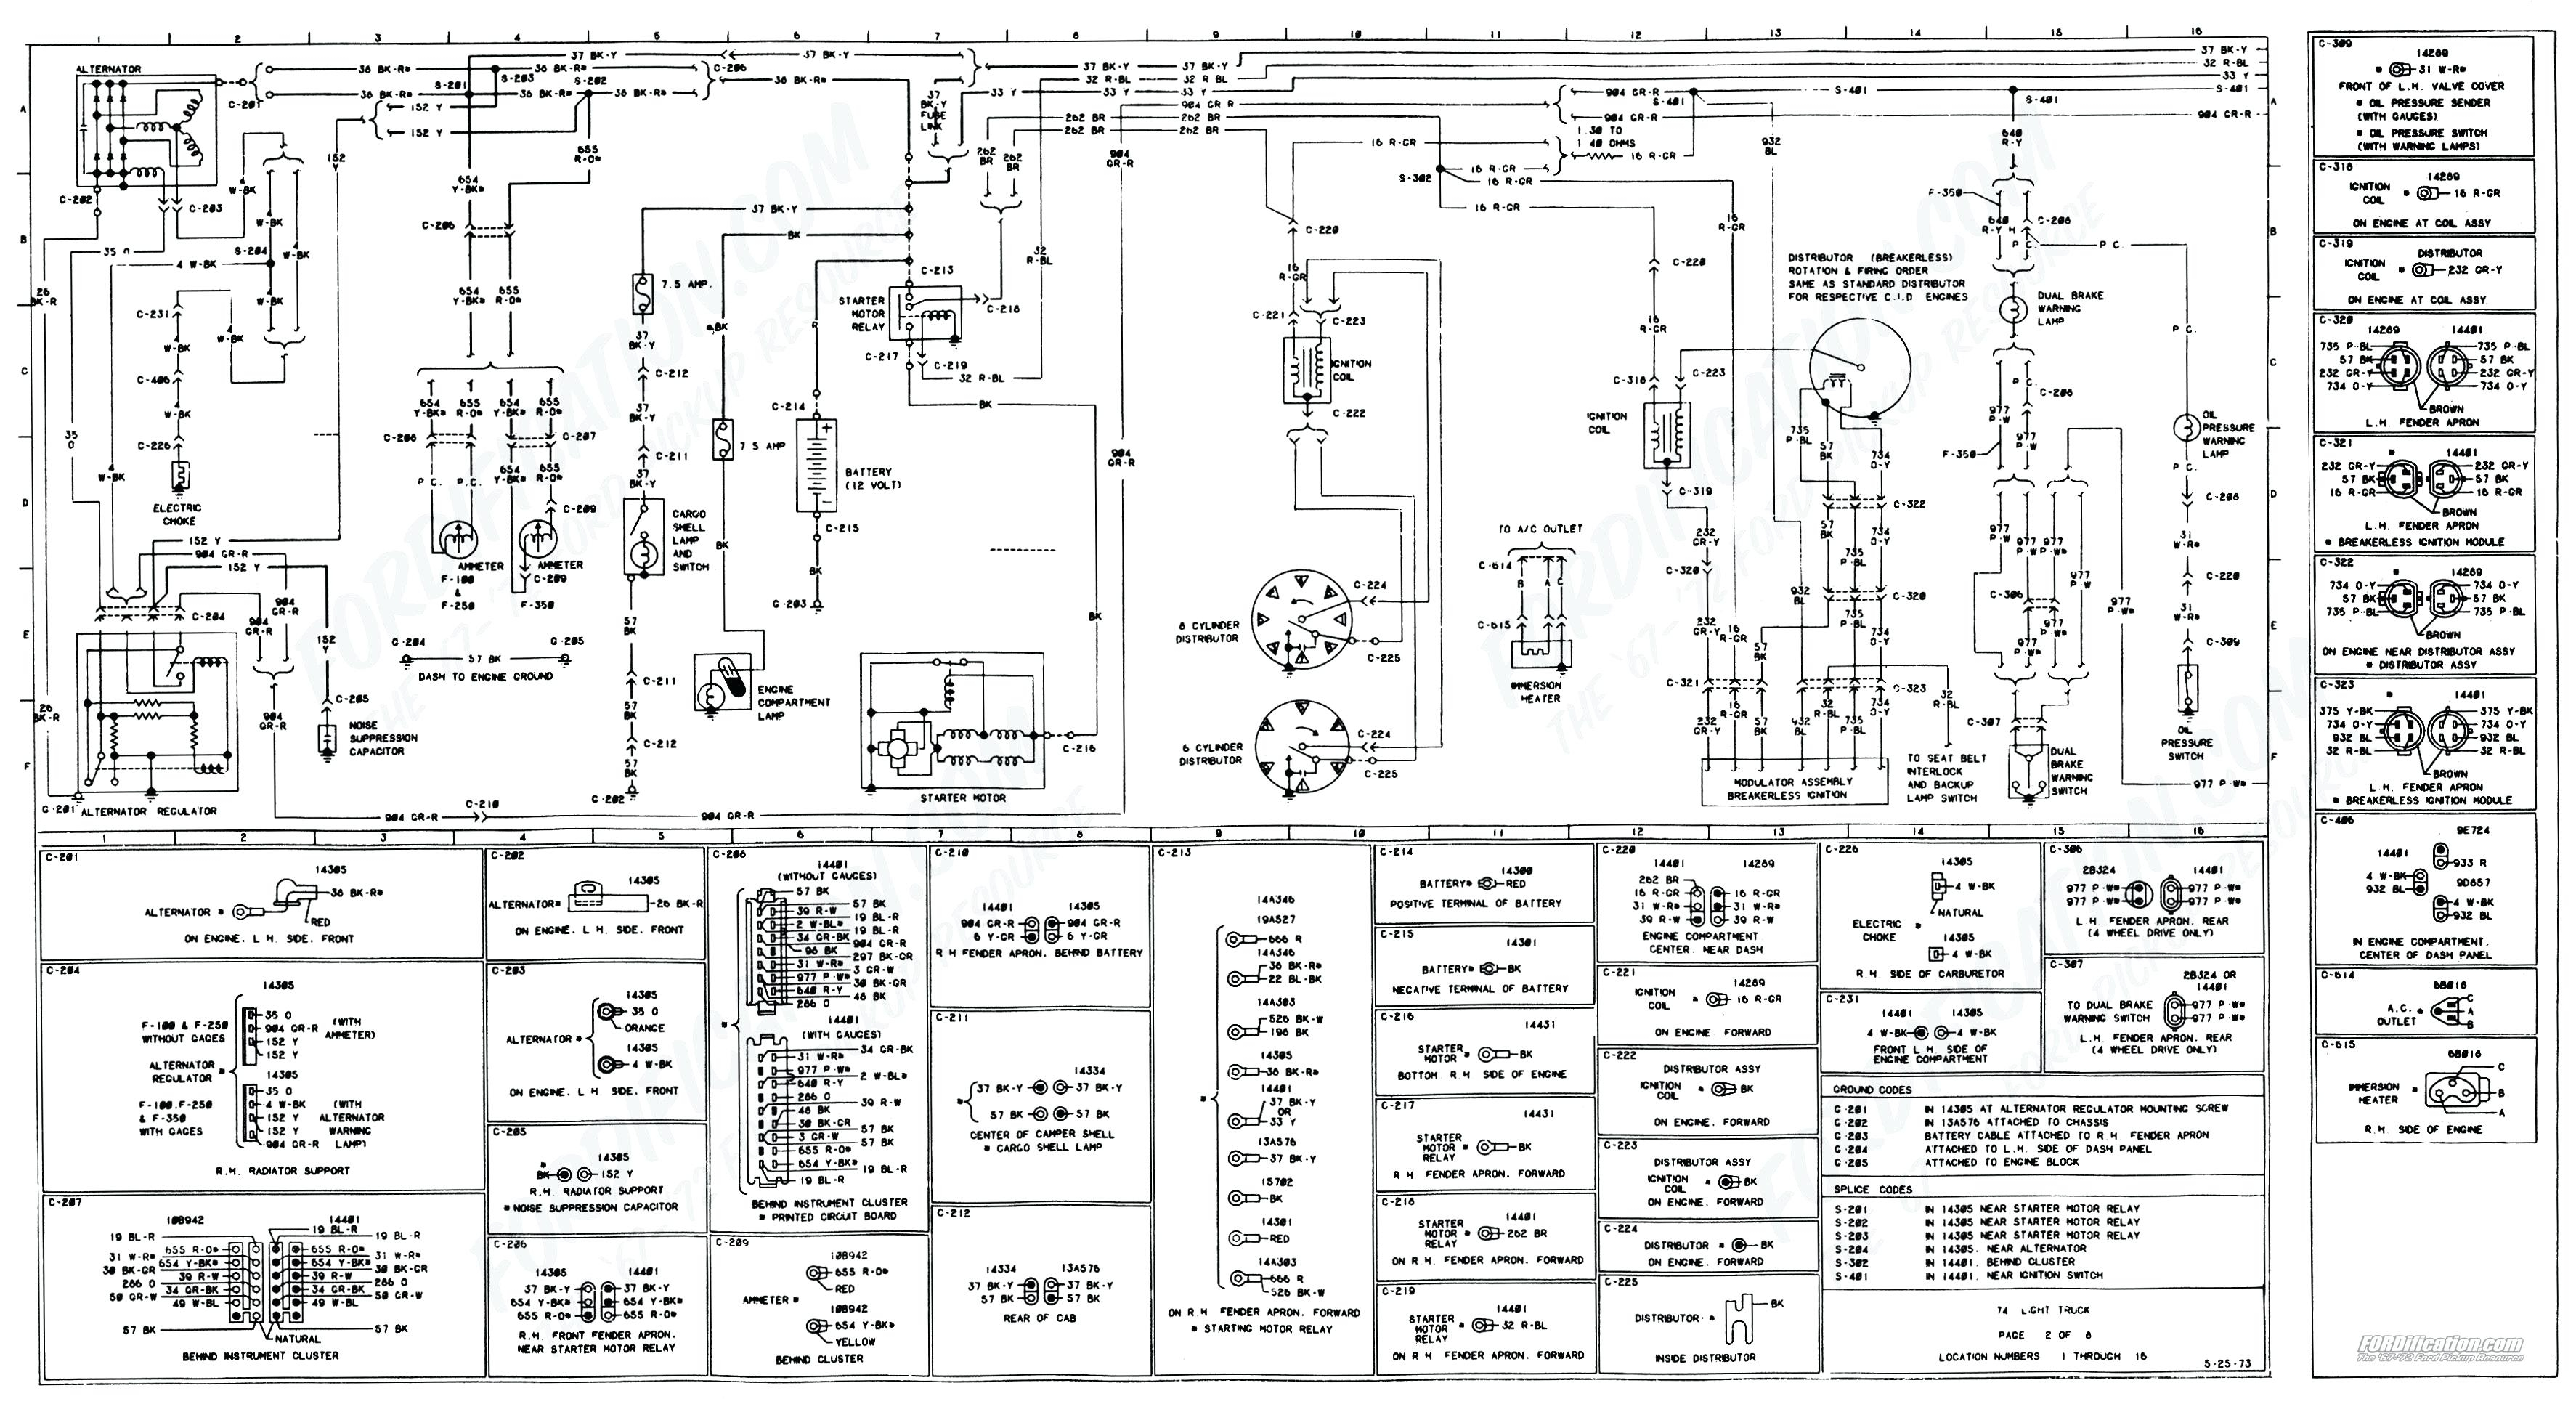 2003 Ford F650 Super Duty Fuse Box Diagram. 05 ford fuse